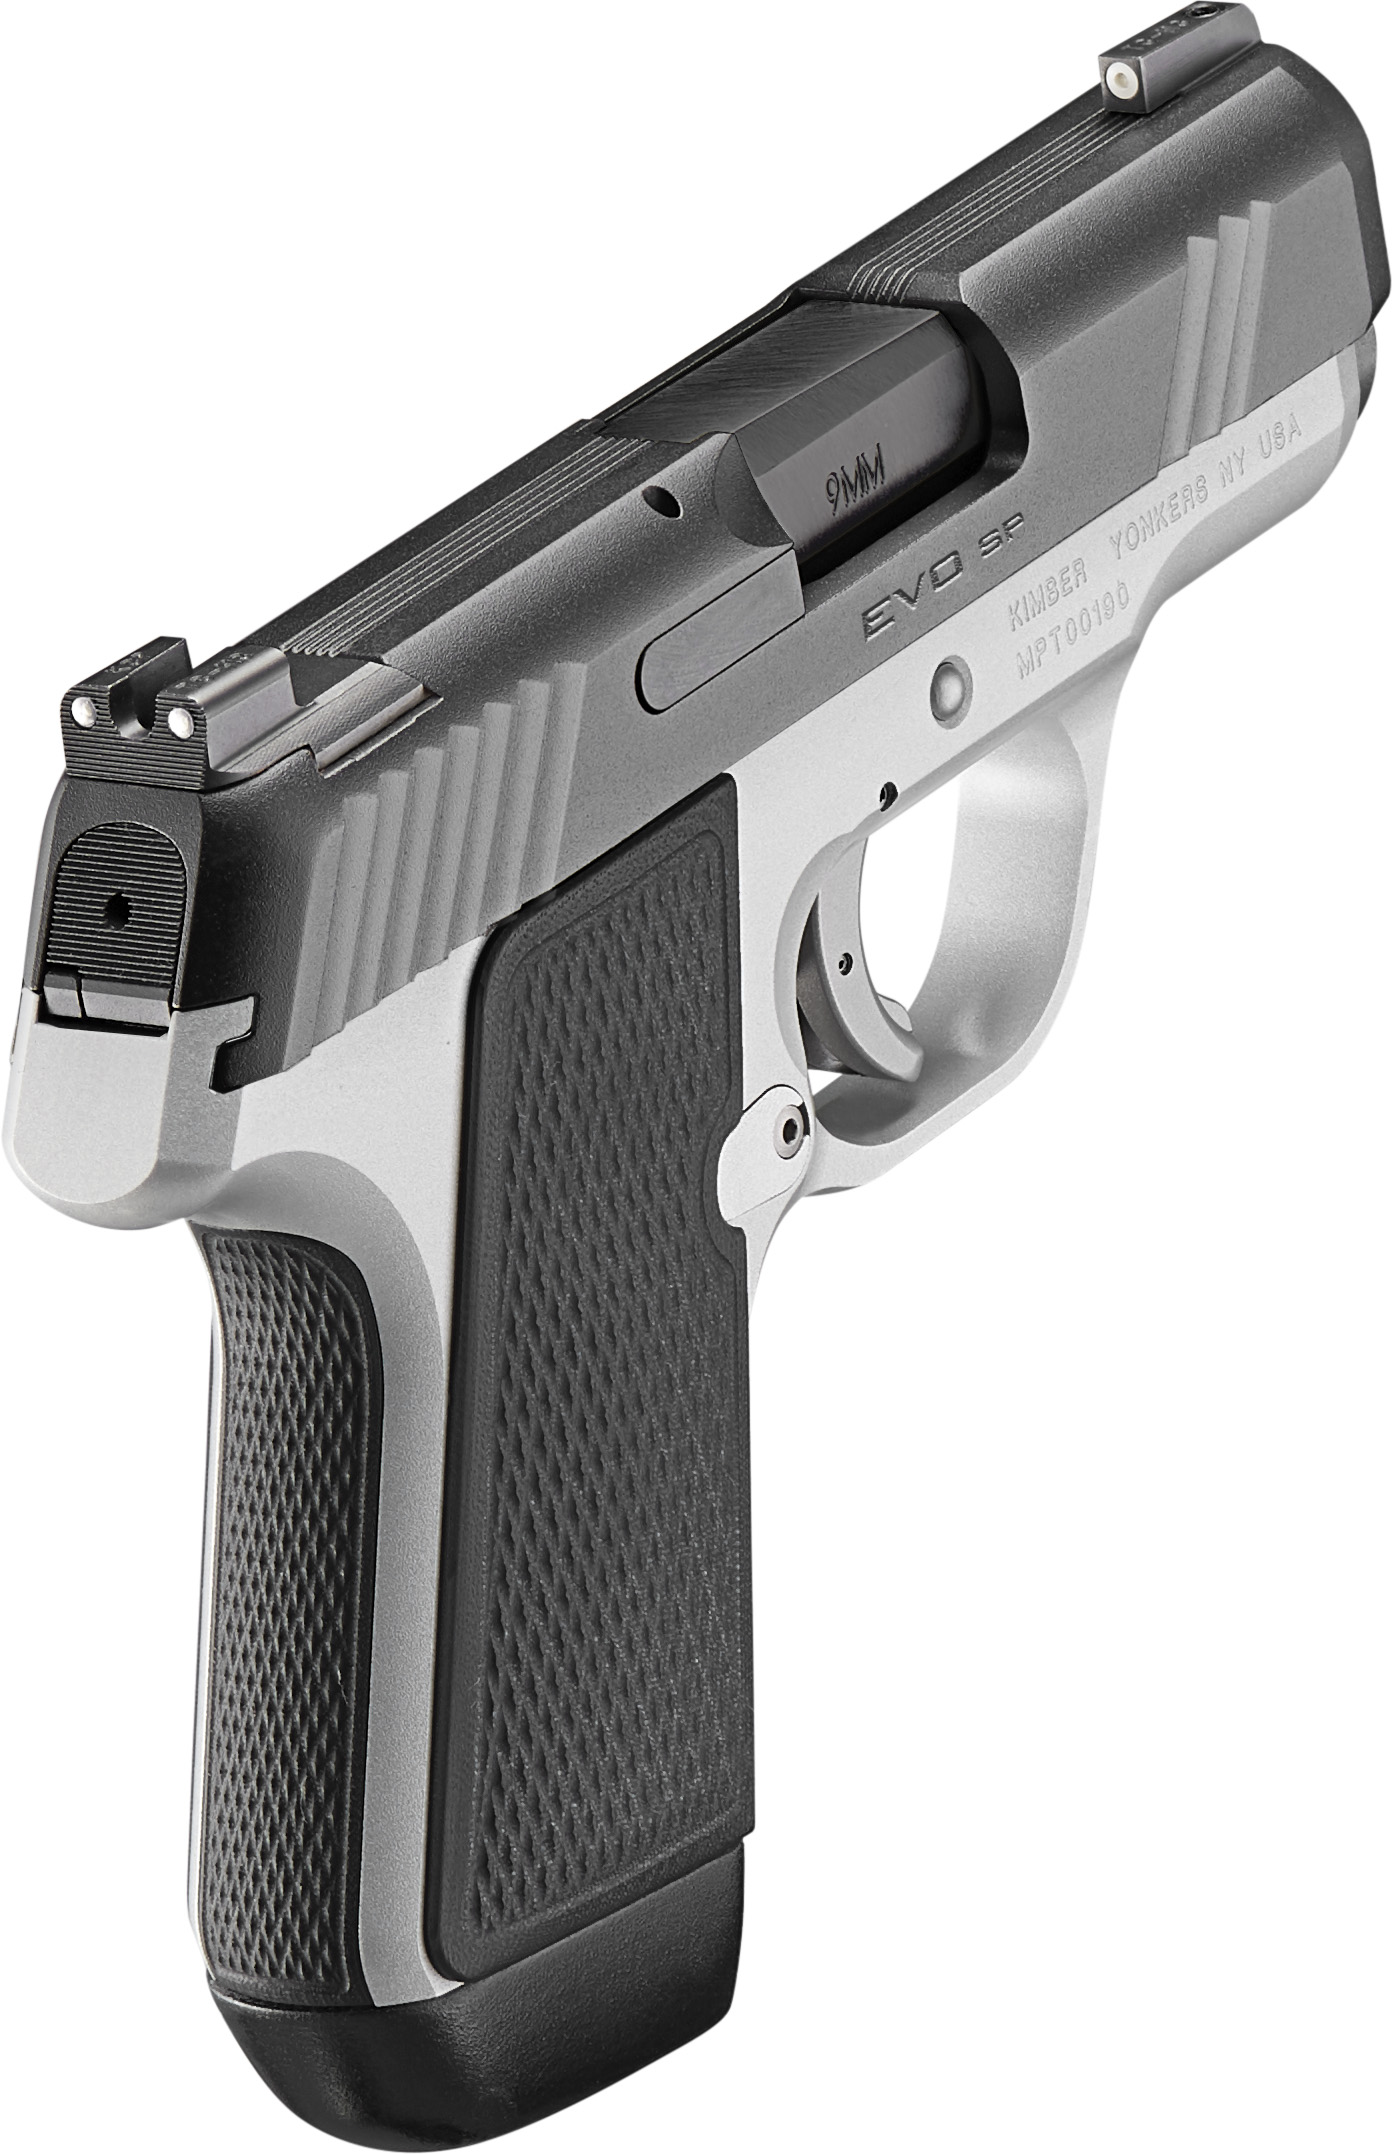 Kimber Gets into the Striker-Fired Game with New All-Metal EVO SP